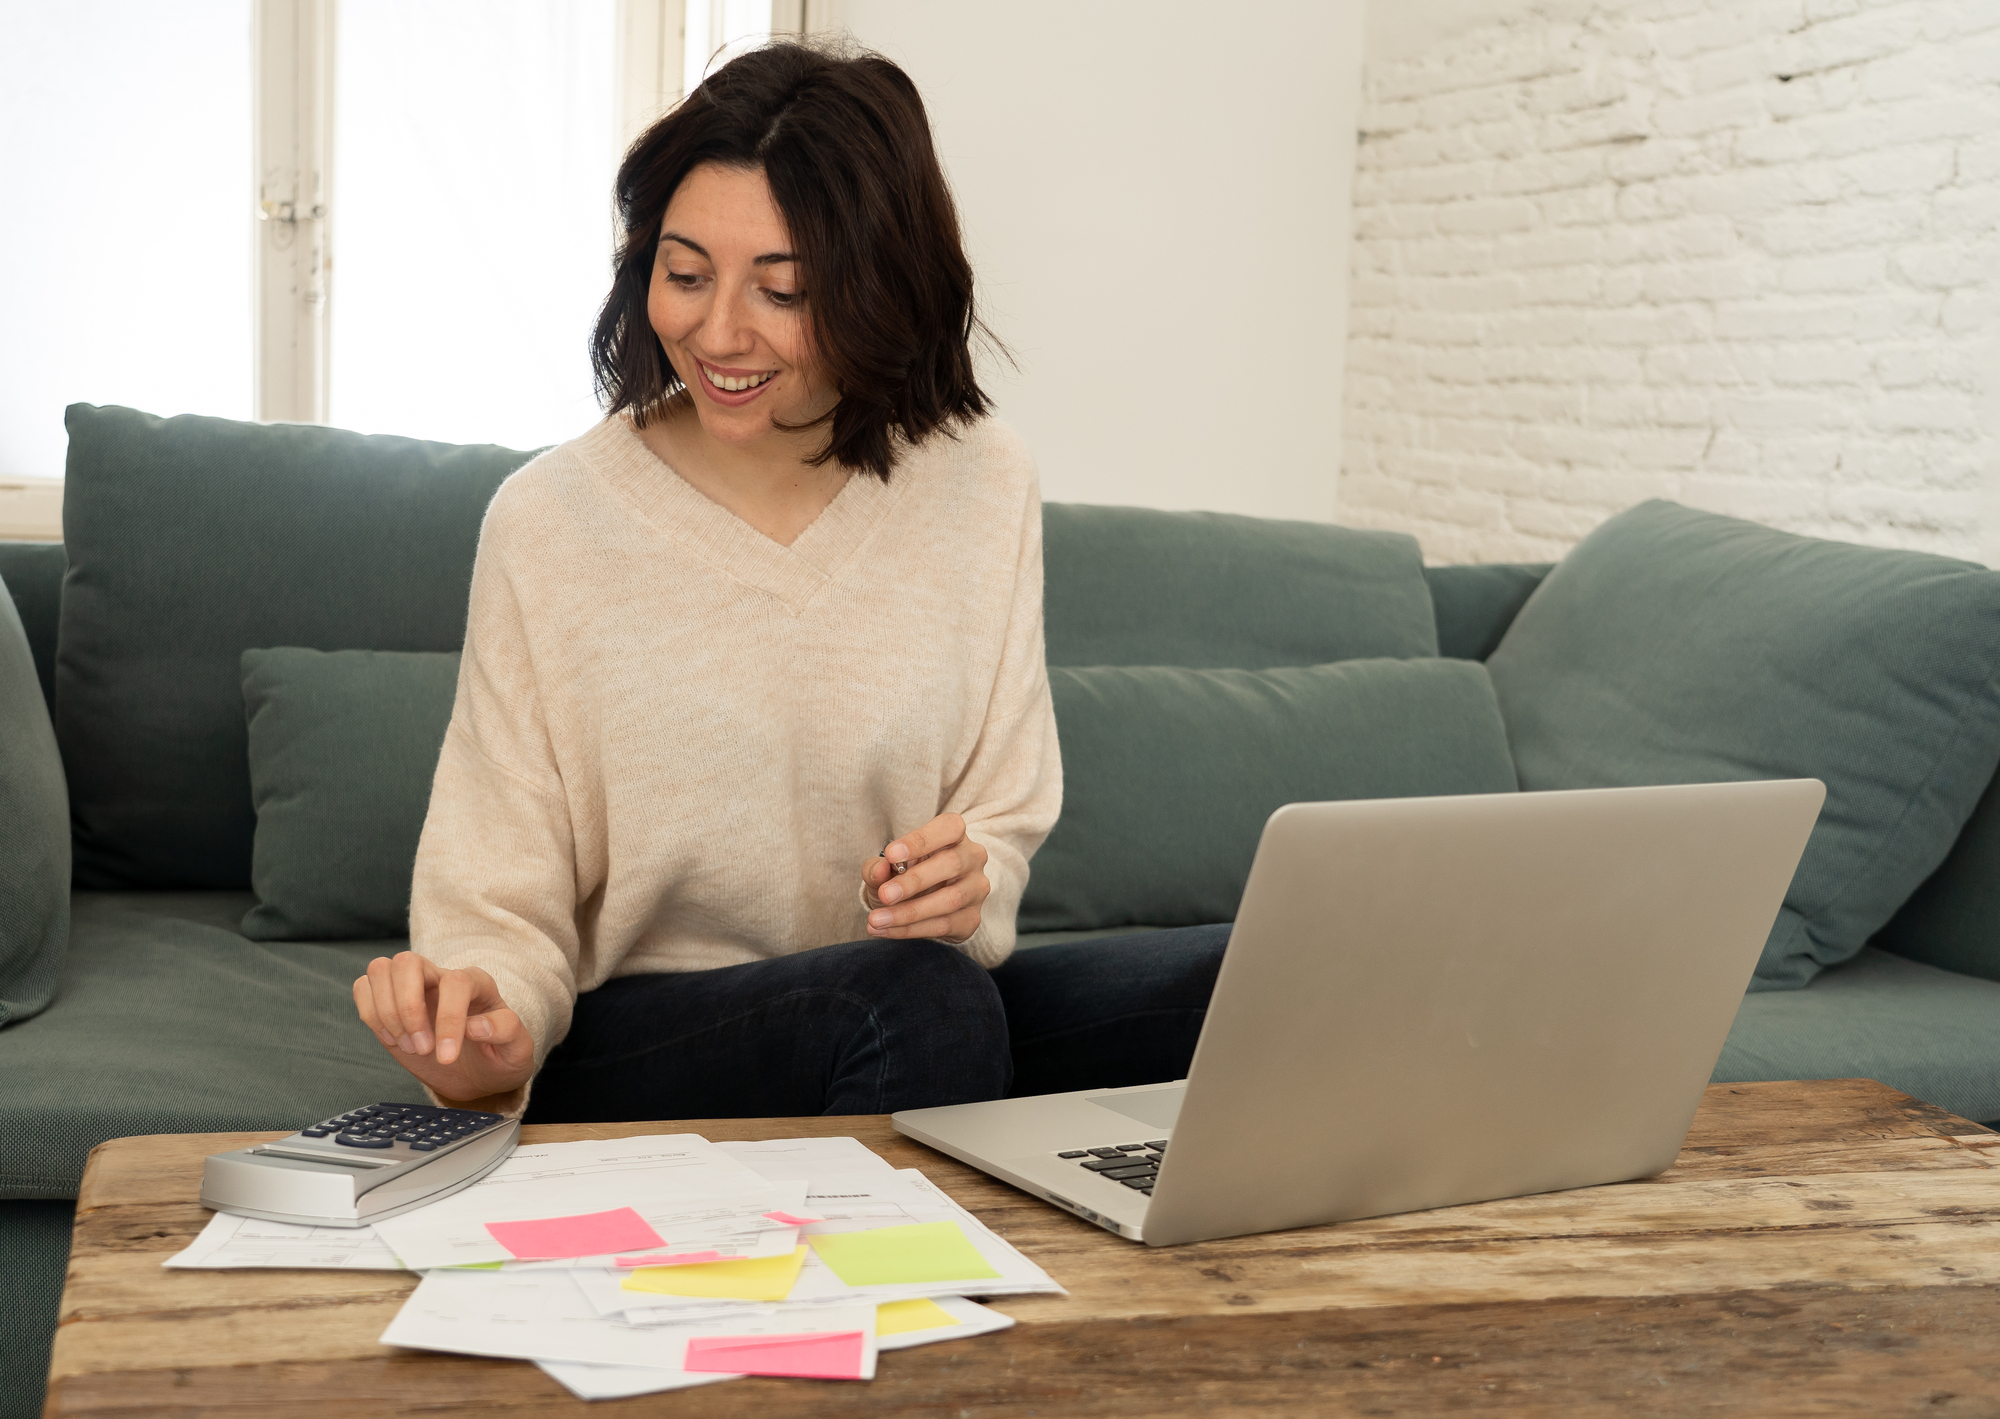 Happy young woman sitting on sofa surrounded by papers calculating expenses and paying bills